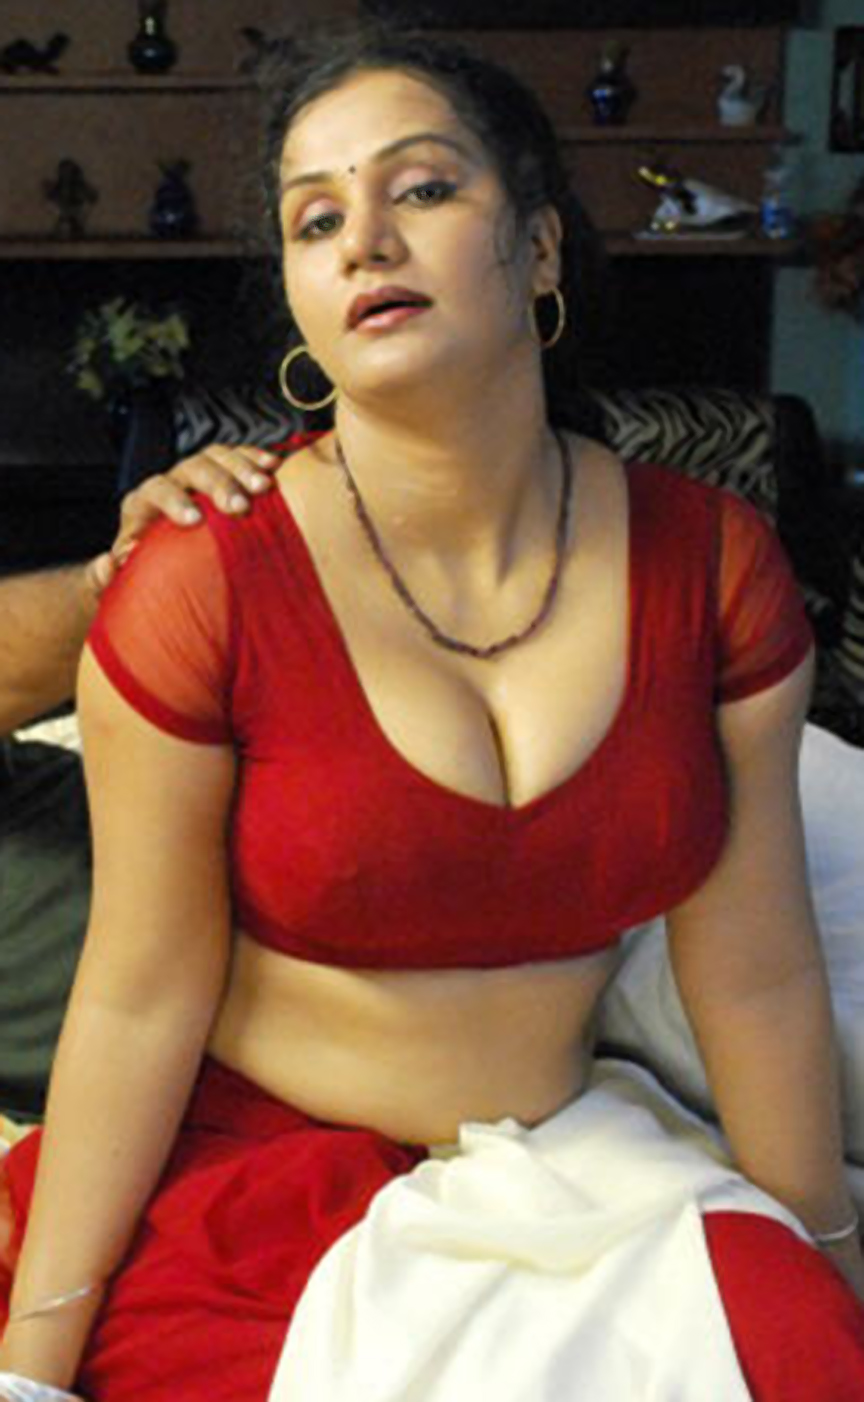 Talk, Hot indian madraje heroine onushka nude images directly